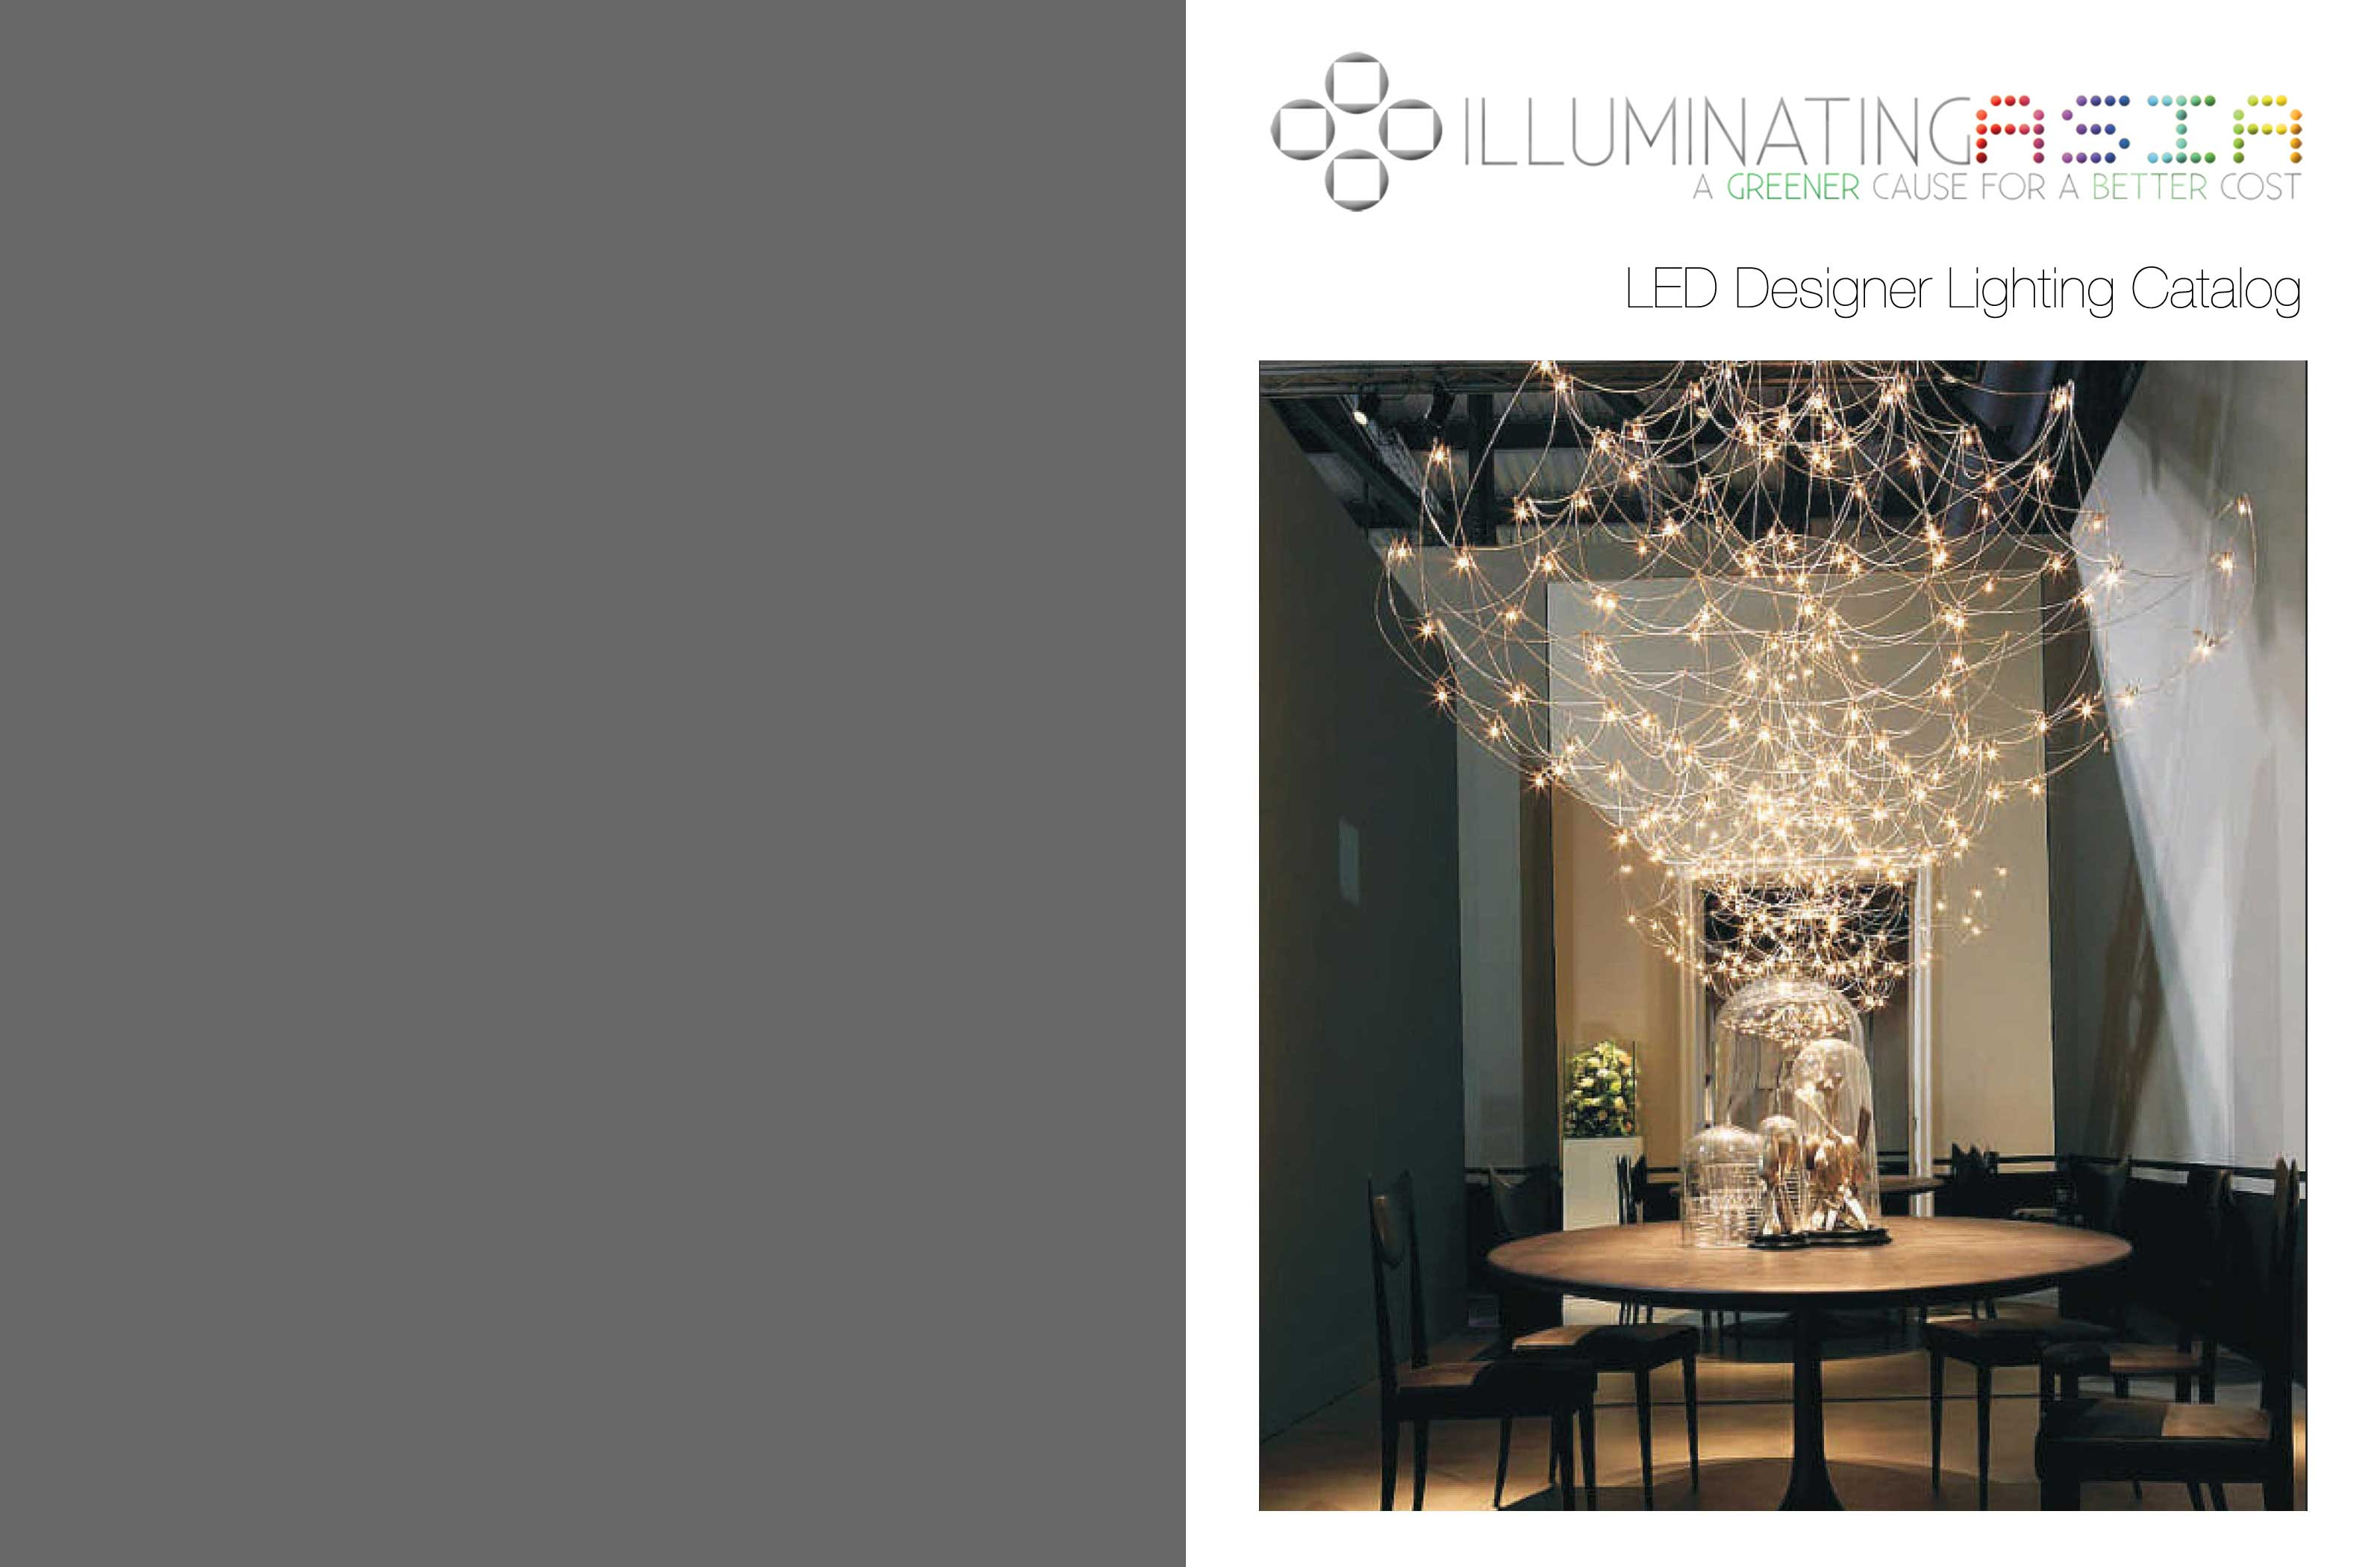 Designer Lightings Illuminating Asia